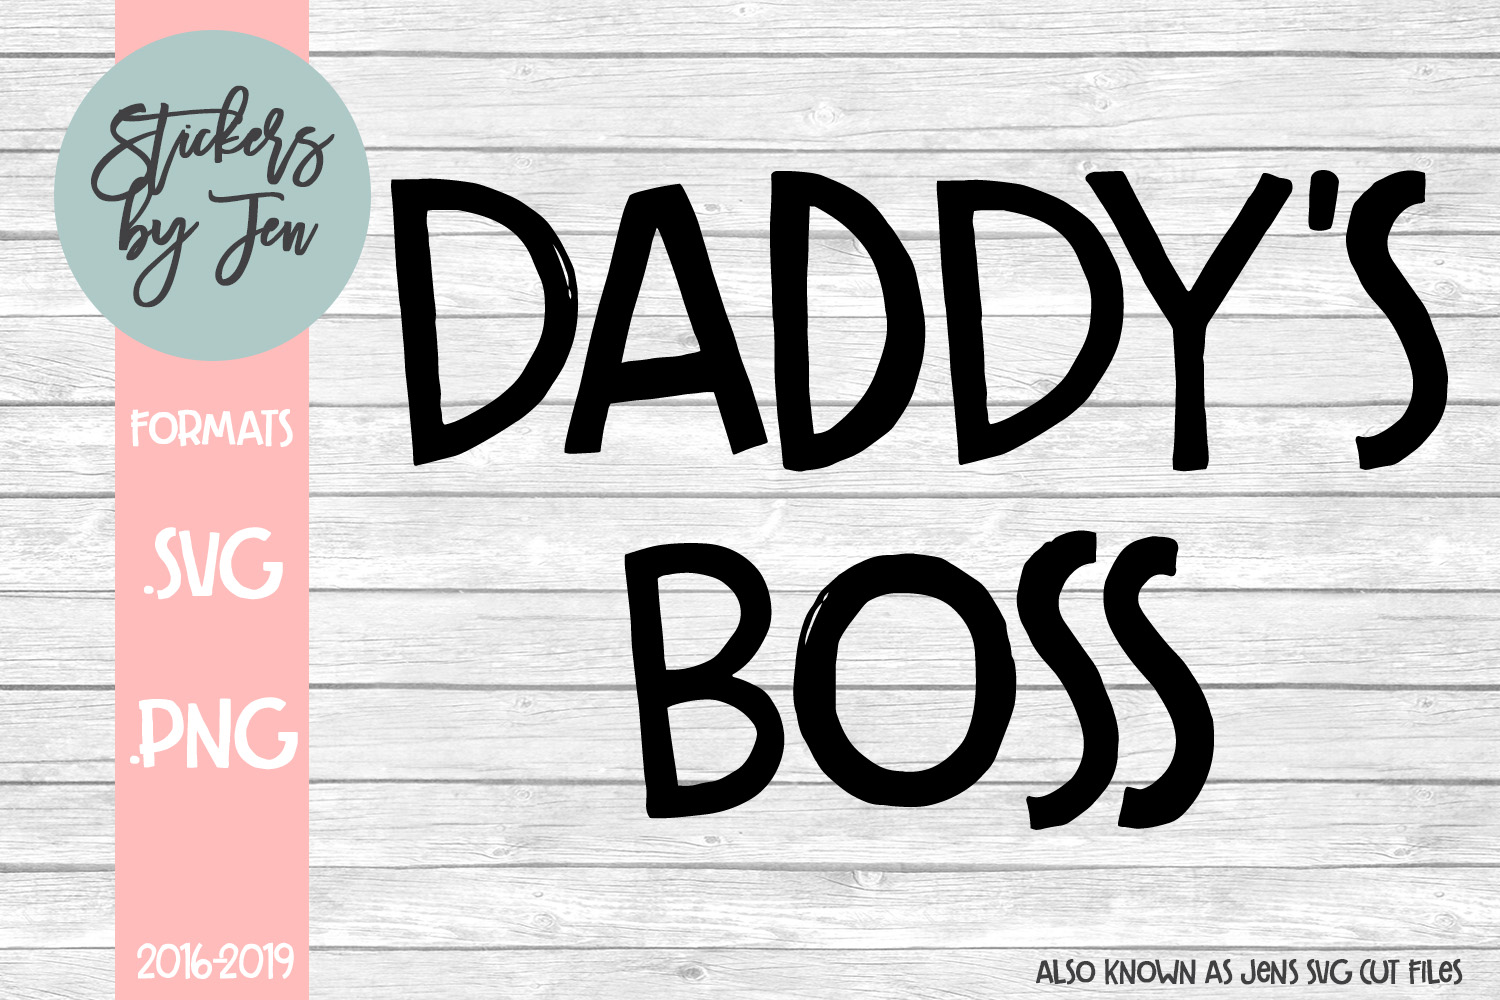 Download Free Daddy S Boss Graphic By Stickers By Jennifer Creative Fabrica for Cricut Explore, Silhouette and other cutting machines.